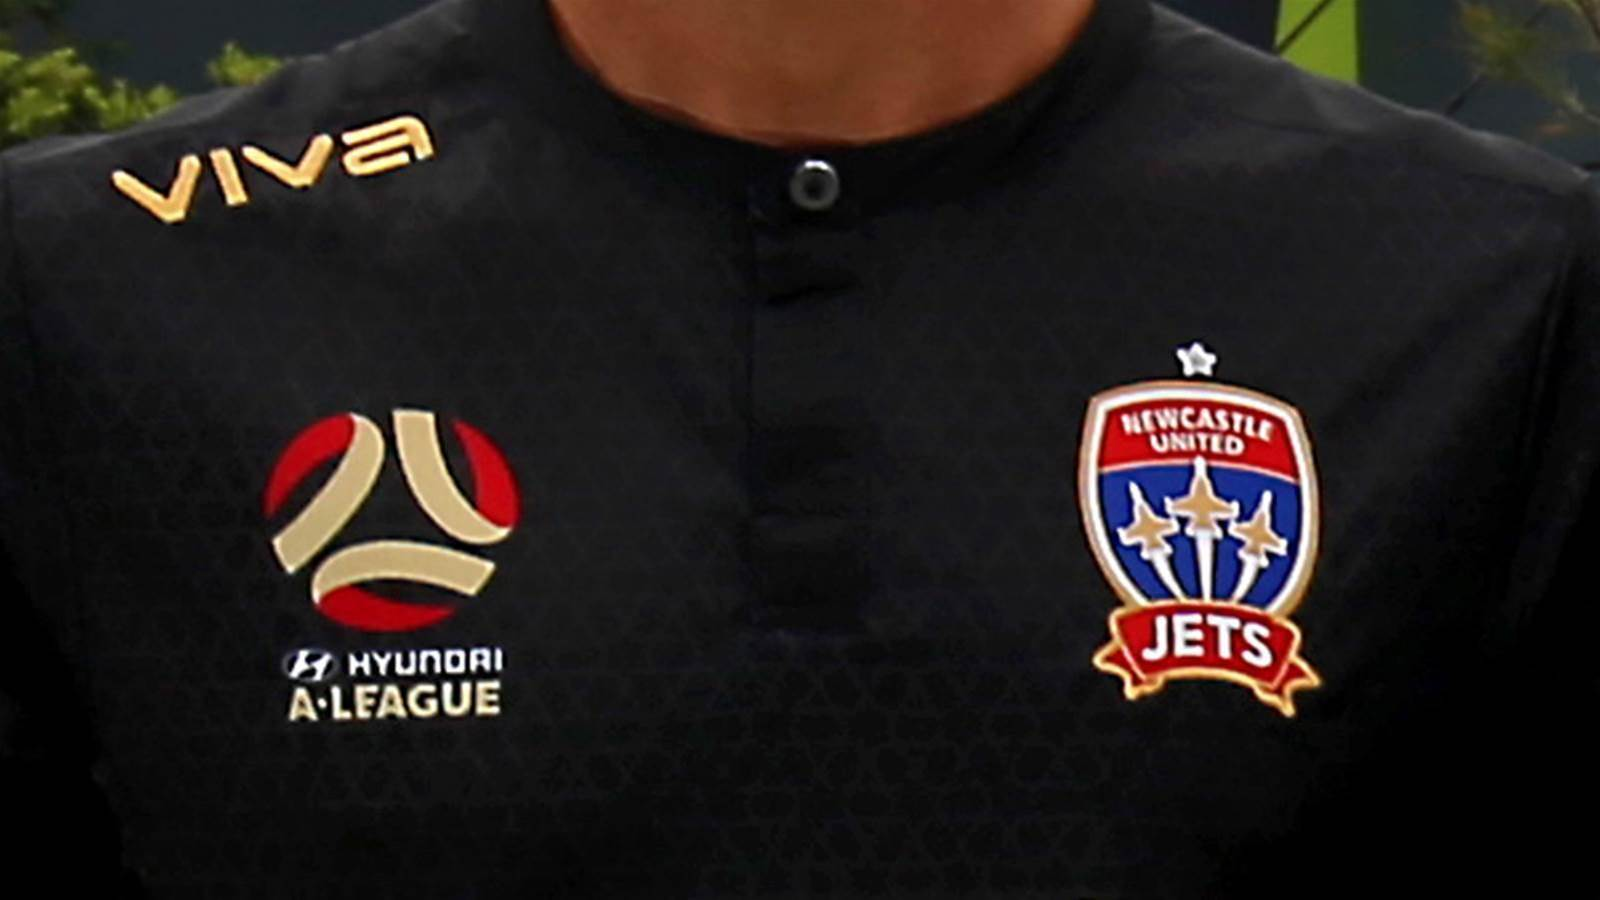 New jet black kit for Newcastle